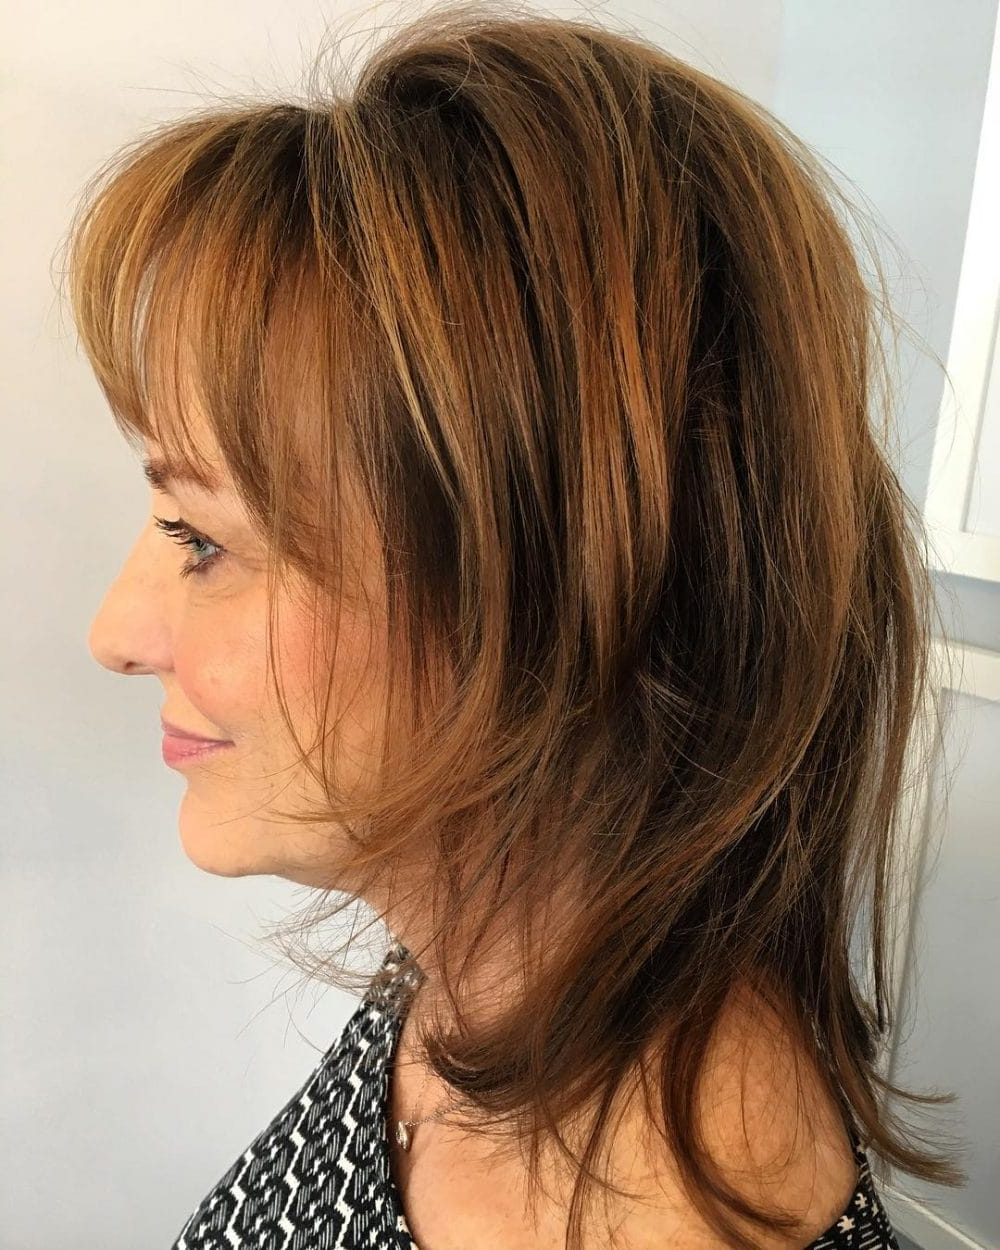 23 Modern Shag Haircuts To Try In 2018 For Cute Choppy Shaggy Short Haircuts (View 23 of 25)